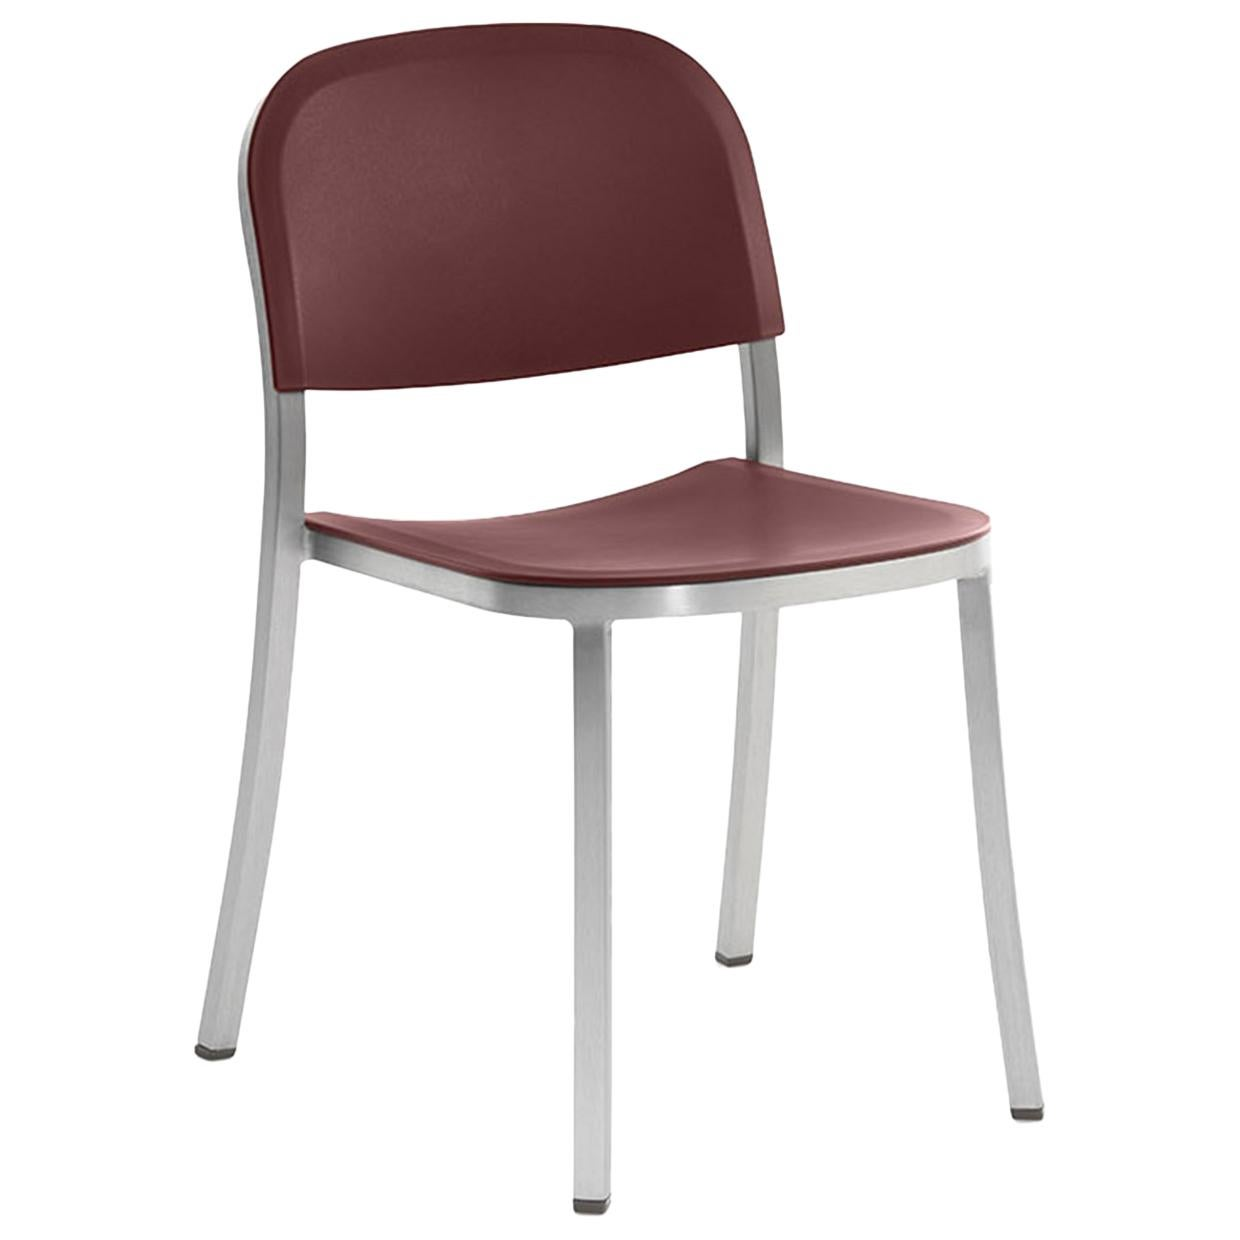 Emeco 1 Inch Stacking Chair in Brushed Aluminum and Bordeaux by Jasper Morrison